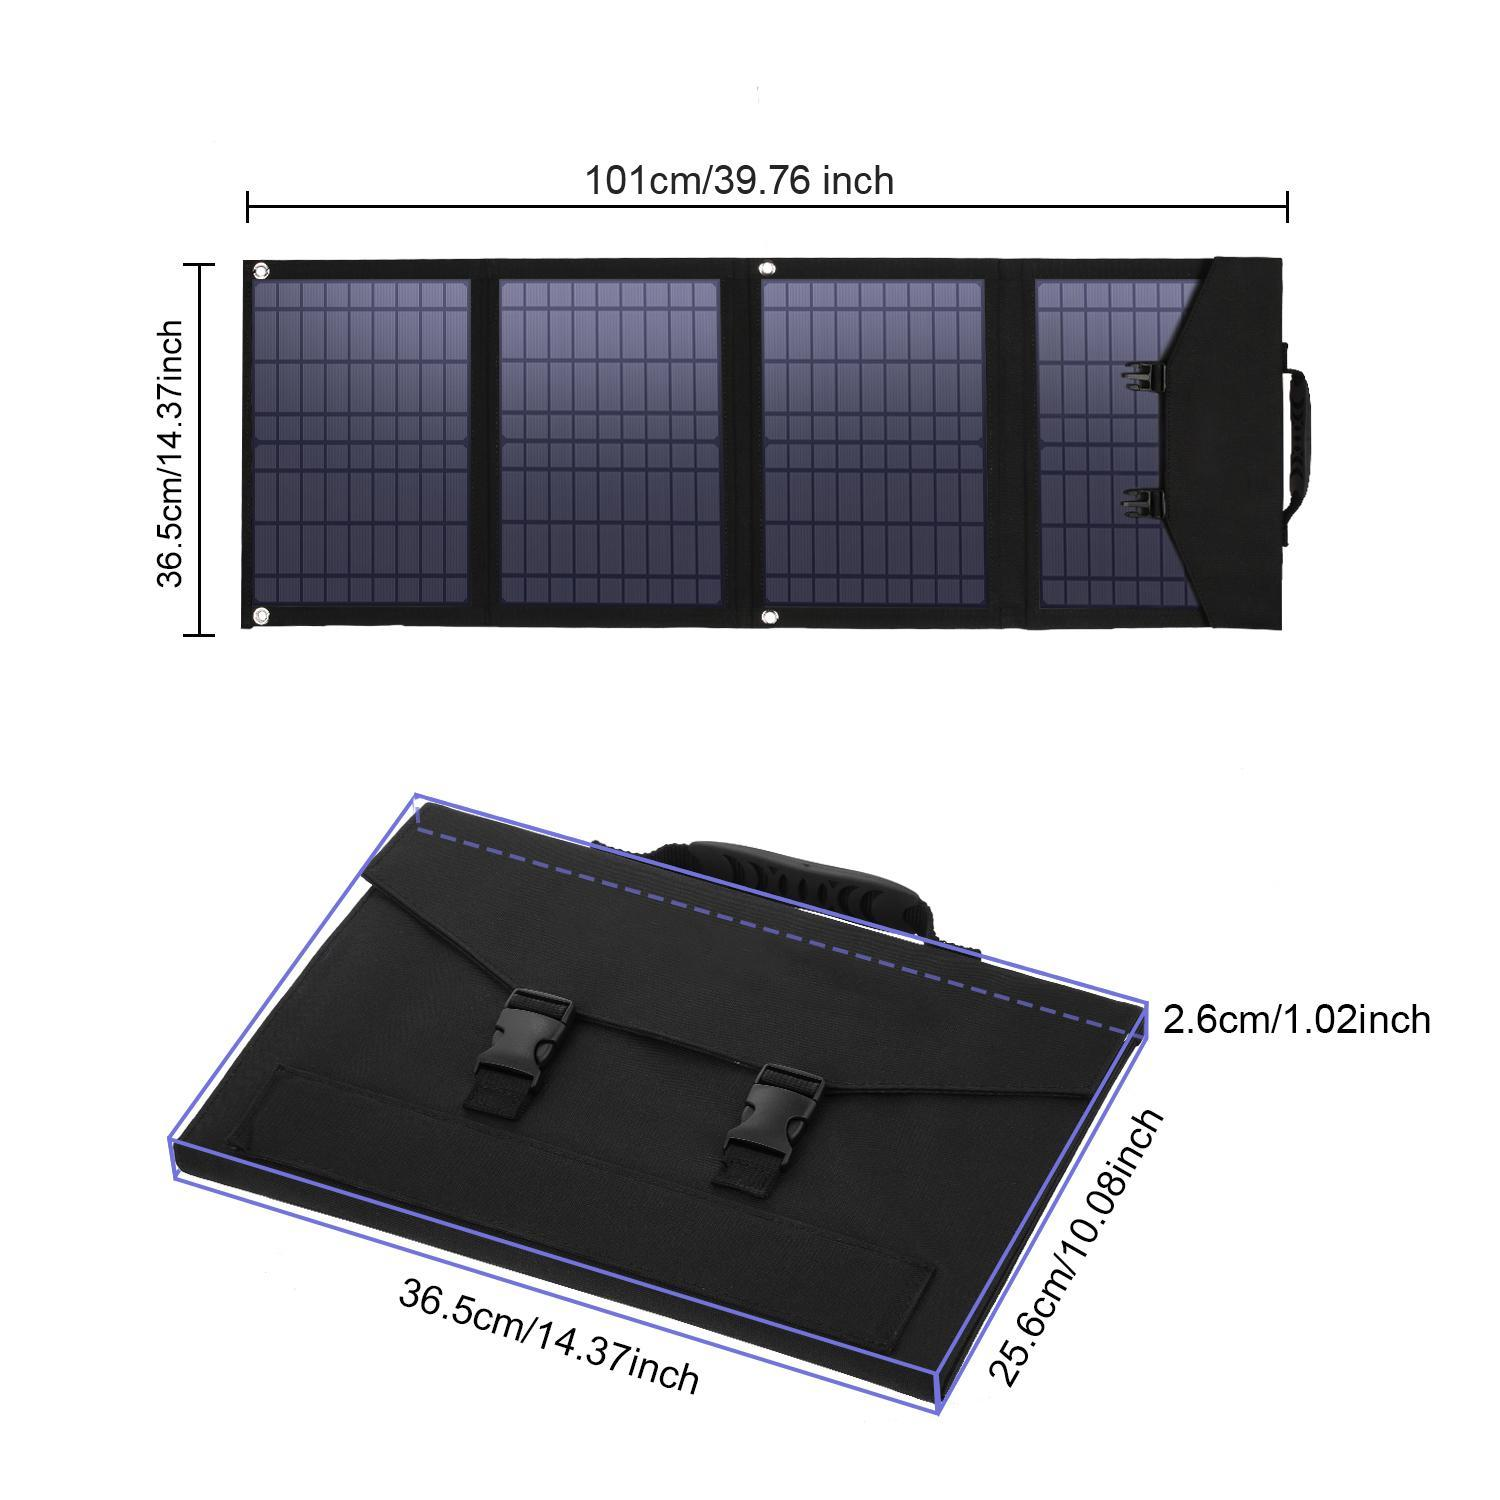 6 Panel Foldable Solar Charger with Dual QC3.0 USB Ports /& 18V DC Output for Portable Power Station Solar Generator for Cell Phone GoPro Laptop Tablet GPS iPad Camera 60W Portable Solar Panel